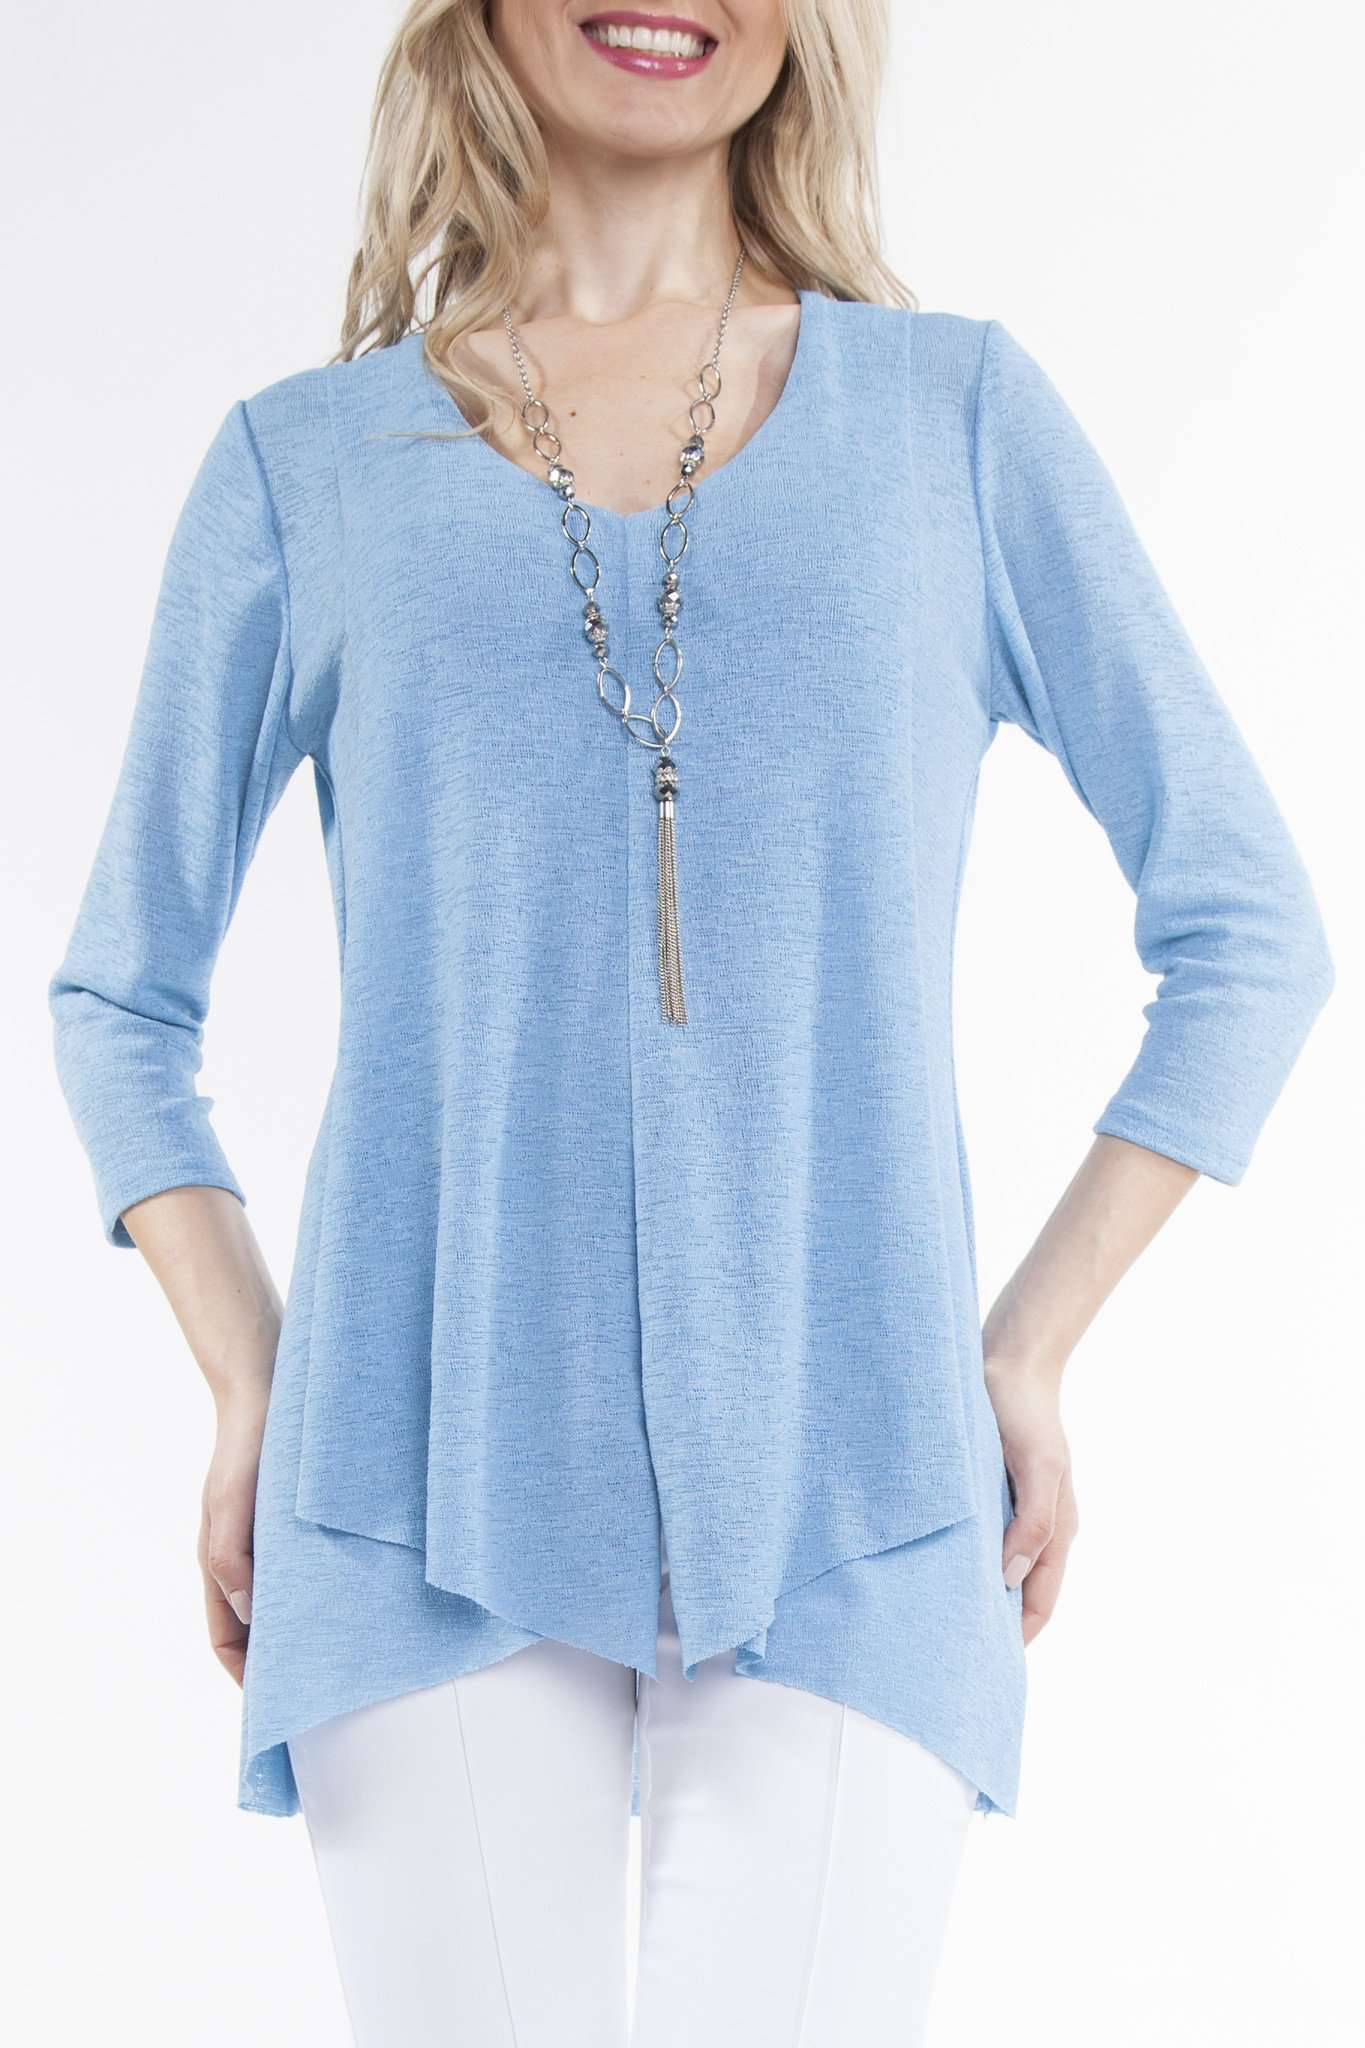 Women's Blue Flattering Flyaway Tunic - Made in Canada - Shop Local - Yvonne Marie - Yvonne Marie